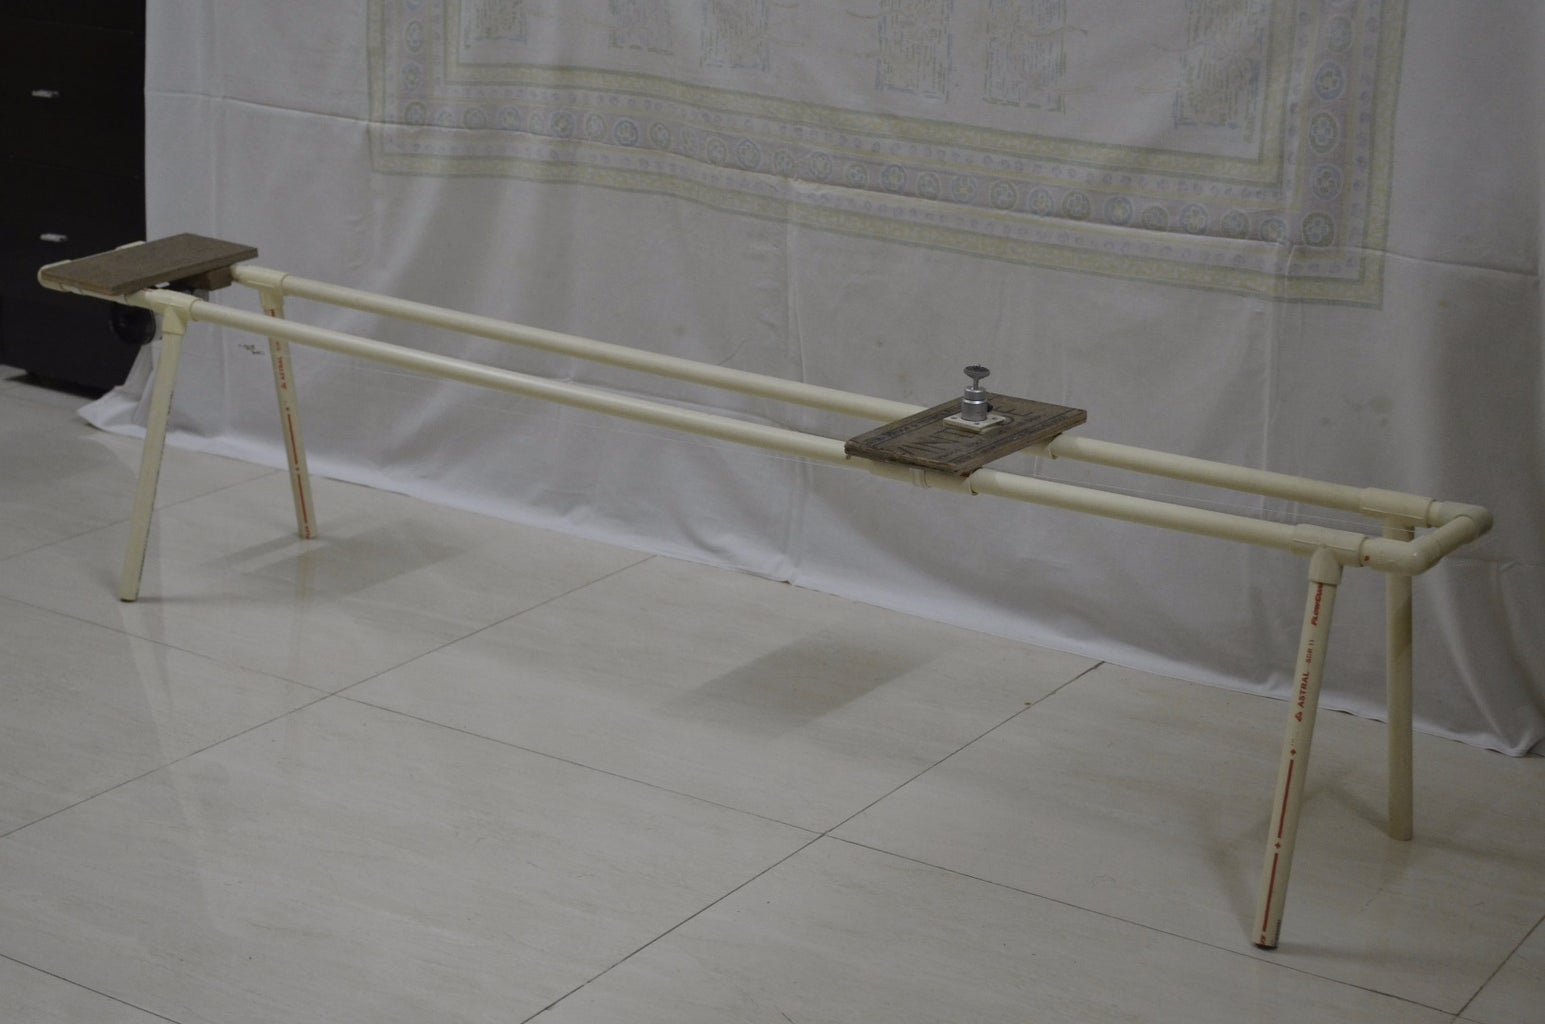 Constructing the Dolly Frame